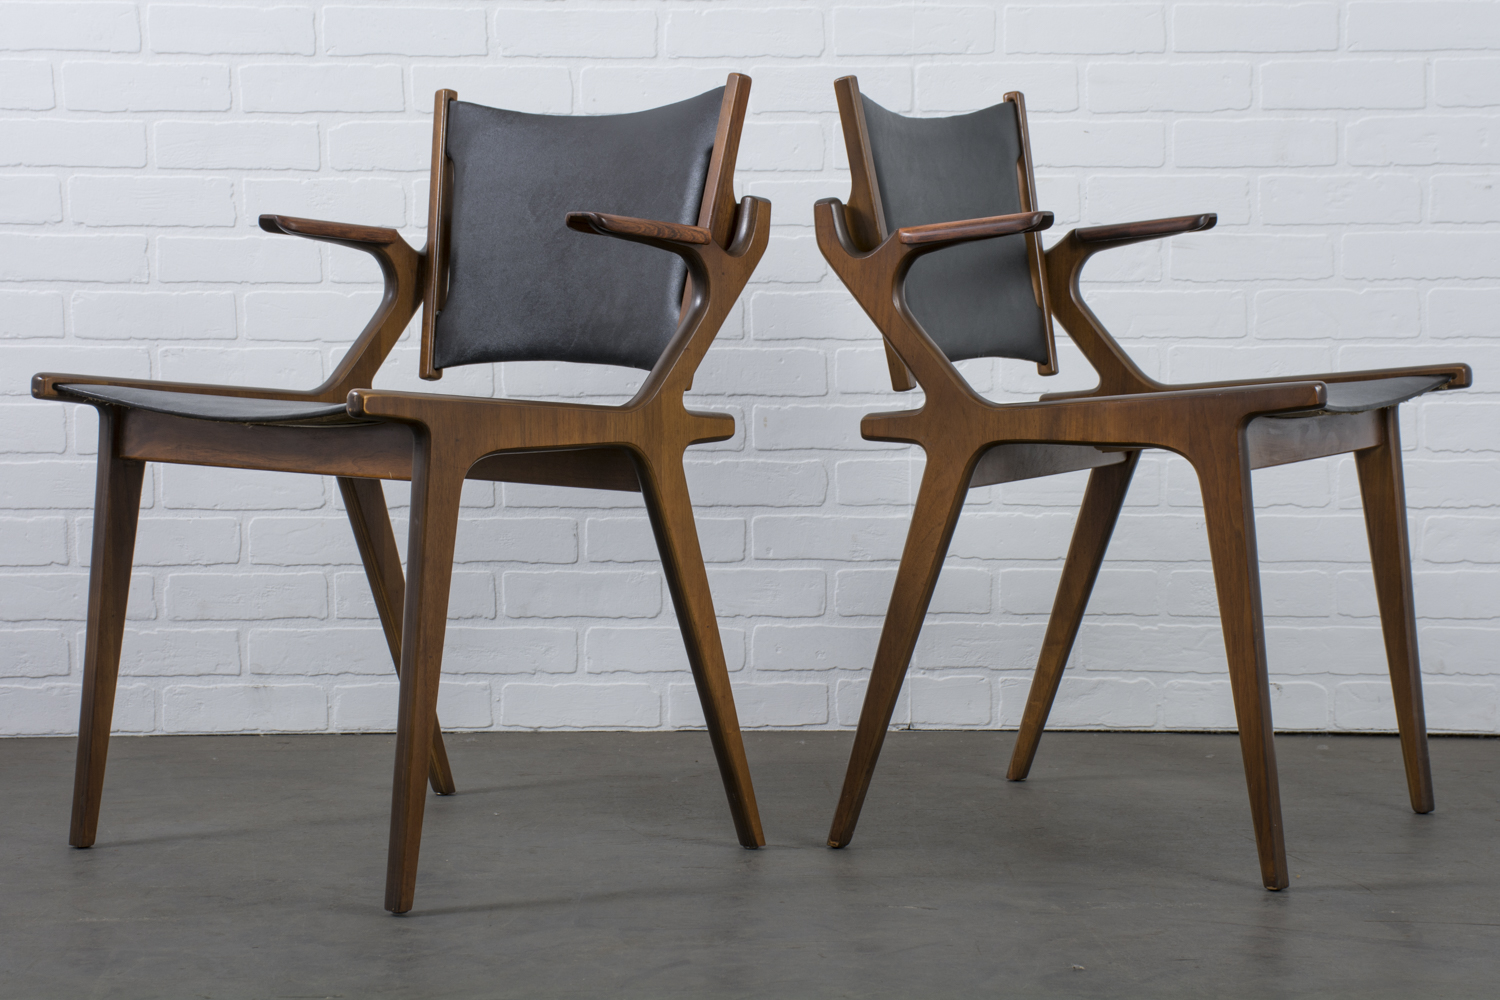 Pair of Vintage Mid-Century Chairs by Richard Thompson for Glenn of California